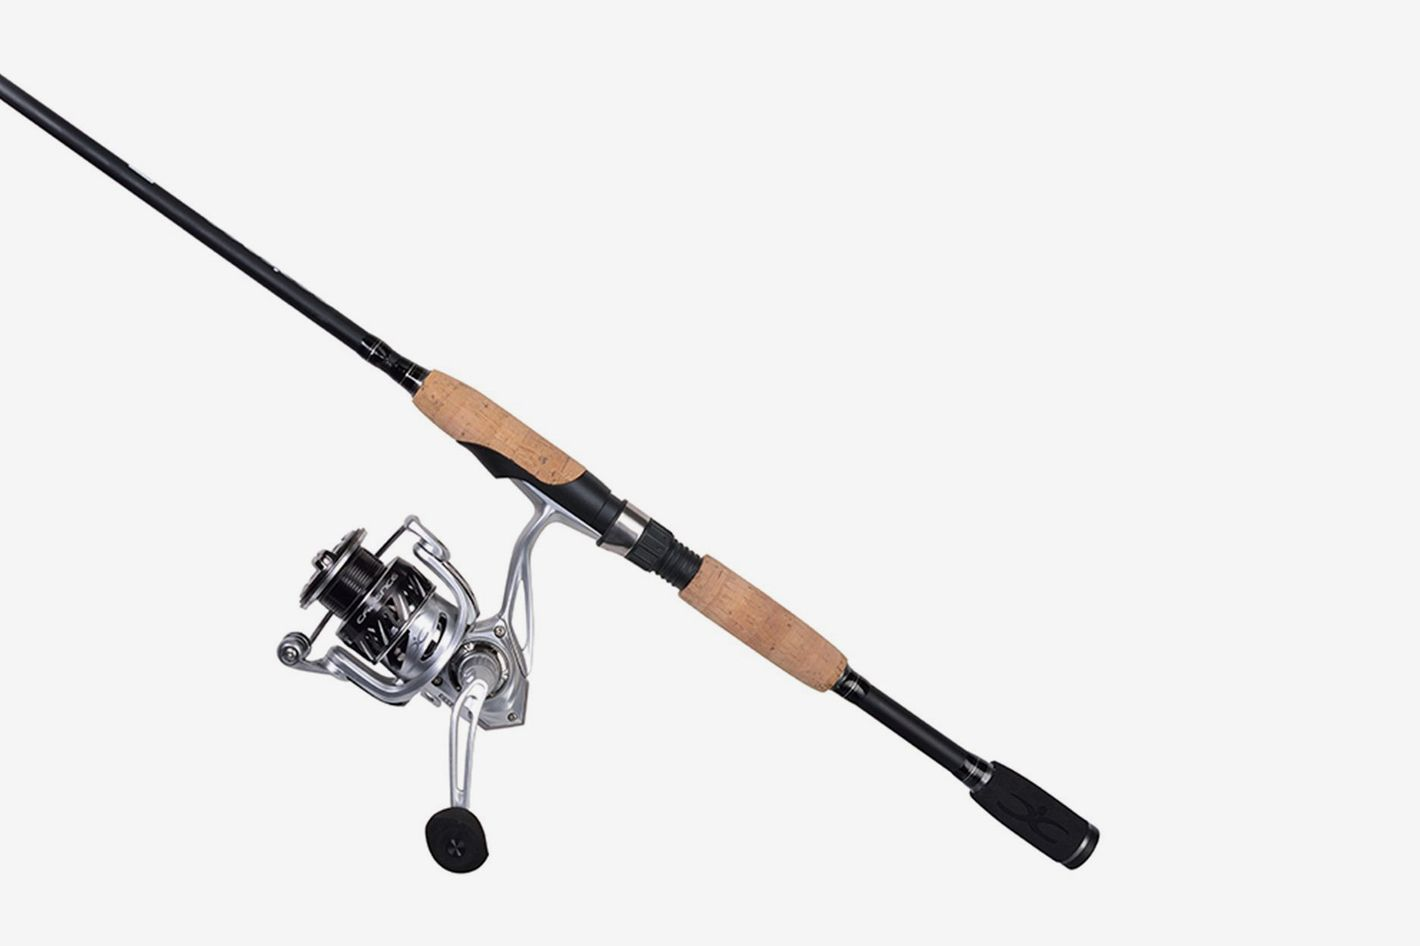 Cadence Fishing CC6 Spinning Combo